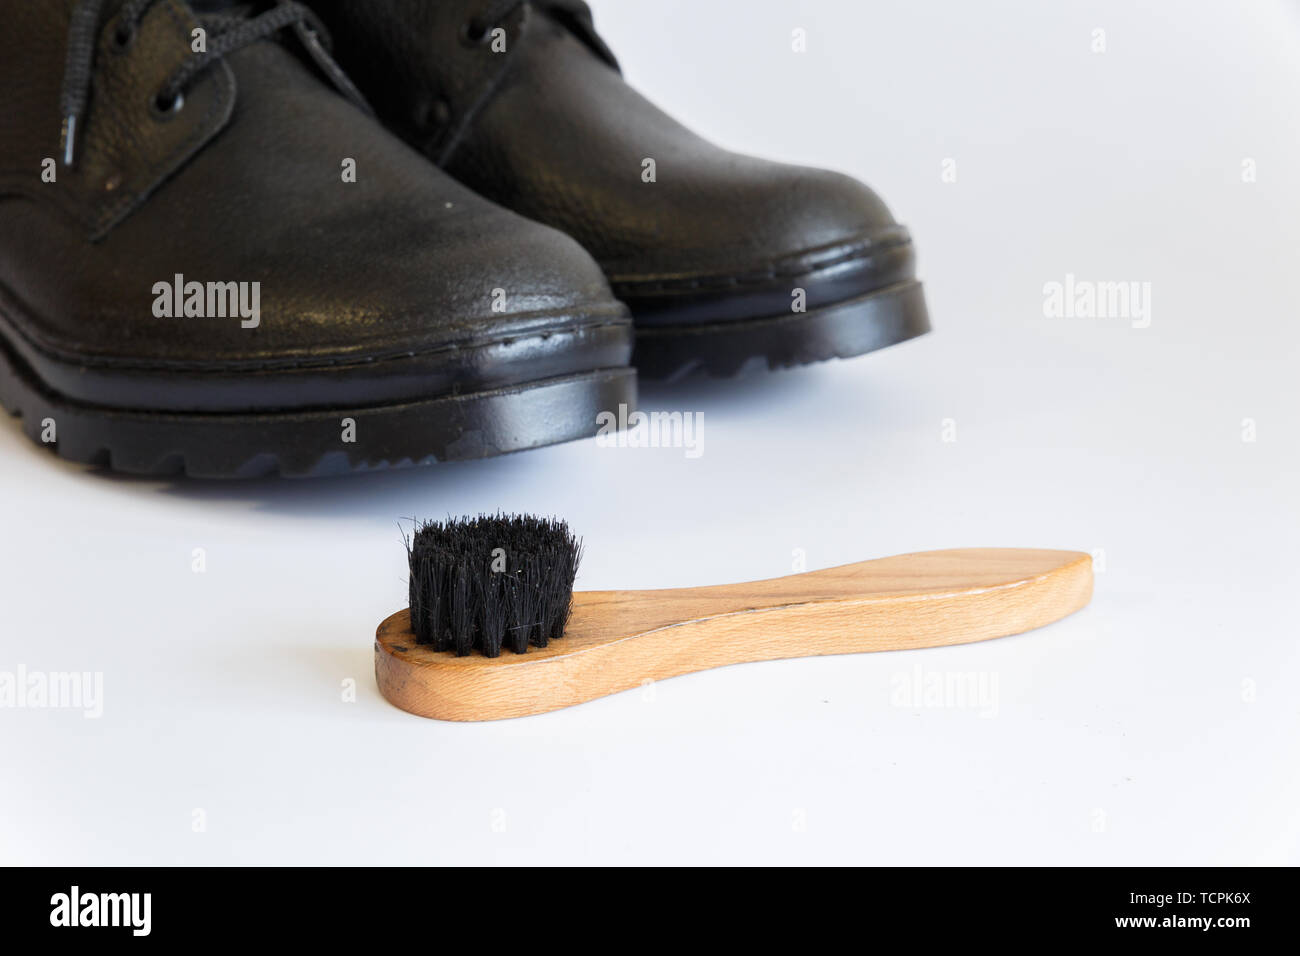 Black shoes and Shoe brush on white background. Shoe care with a brush. Shoe brush. No people. Stock Photo